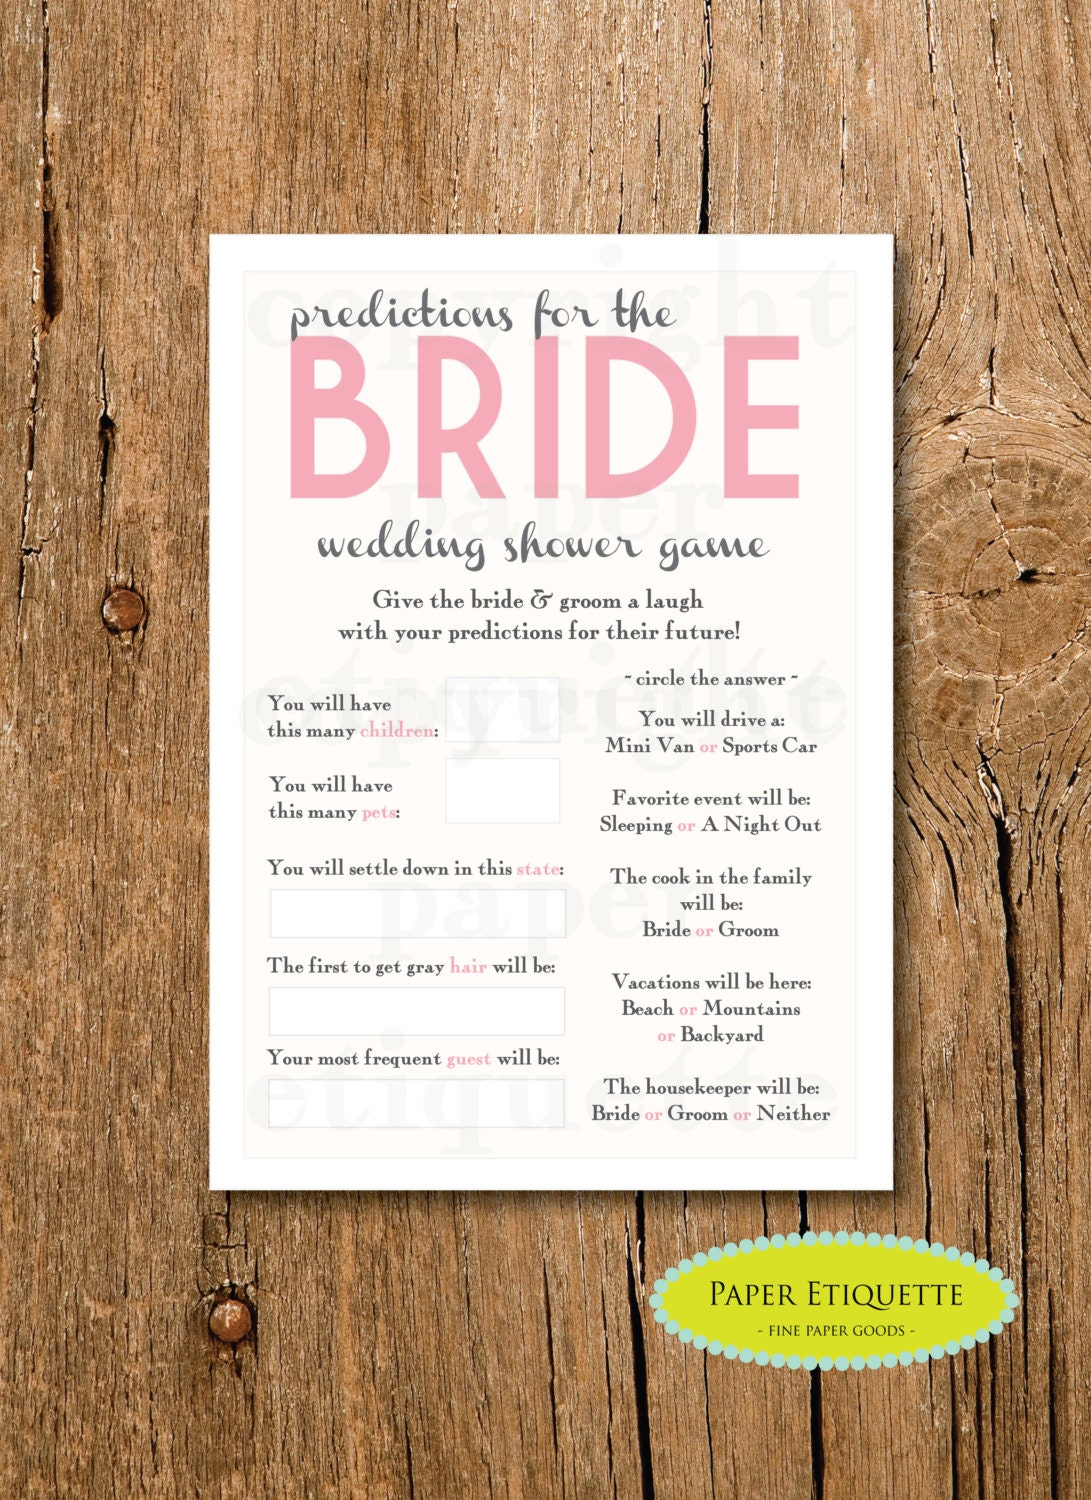 INSTANT UPLOAD Bridal Shower Game Predictions for the